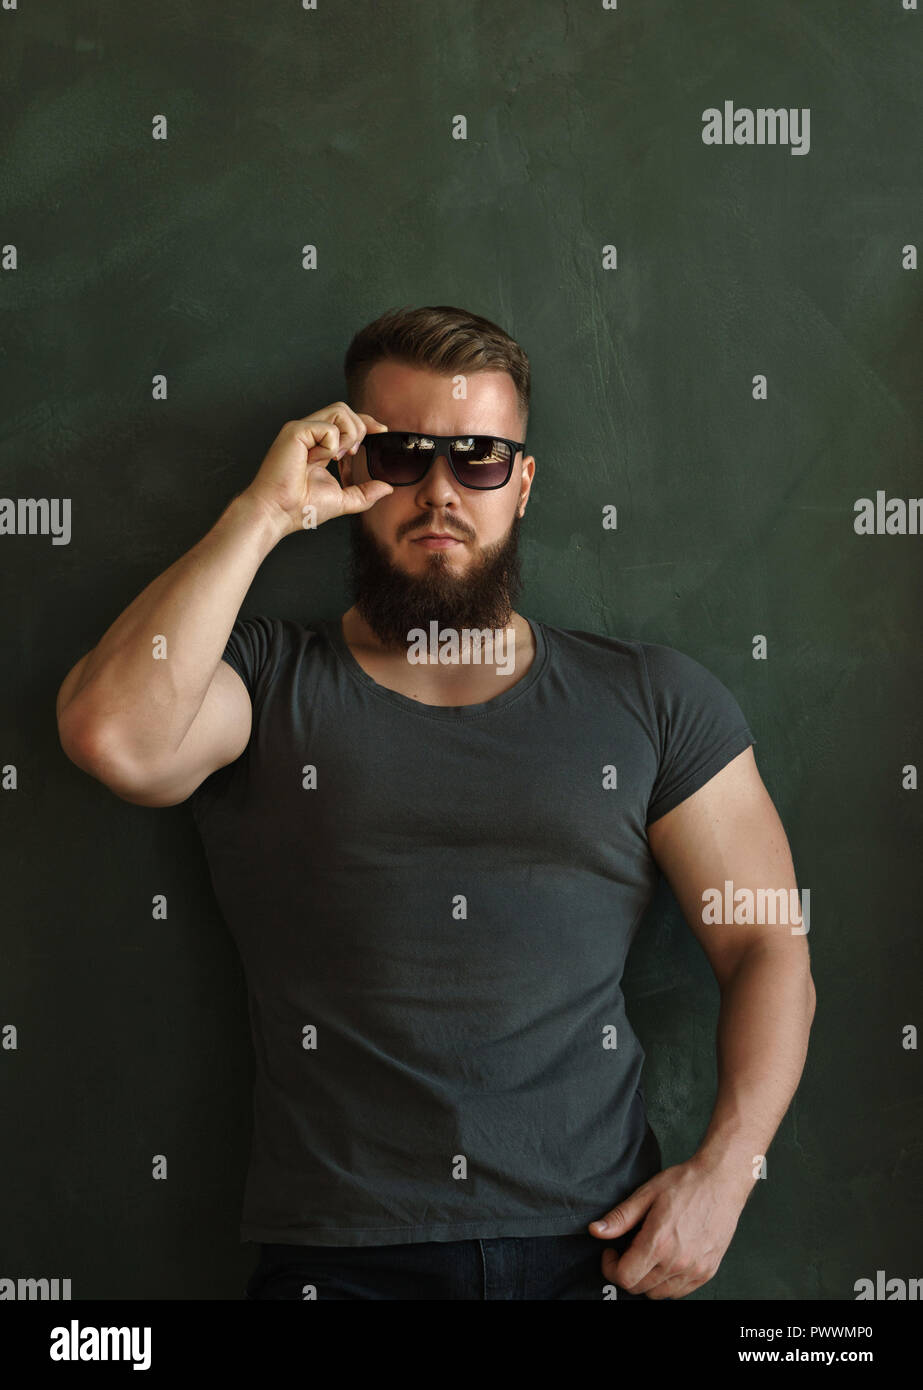 f212fa3e109f Bodybuilder in sunglasses portrait. Muscular man with a beard in a tight  t-shirt straightens his glasses. Stylish and sporty.